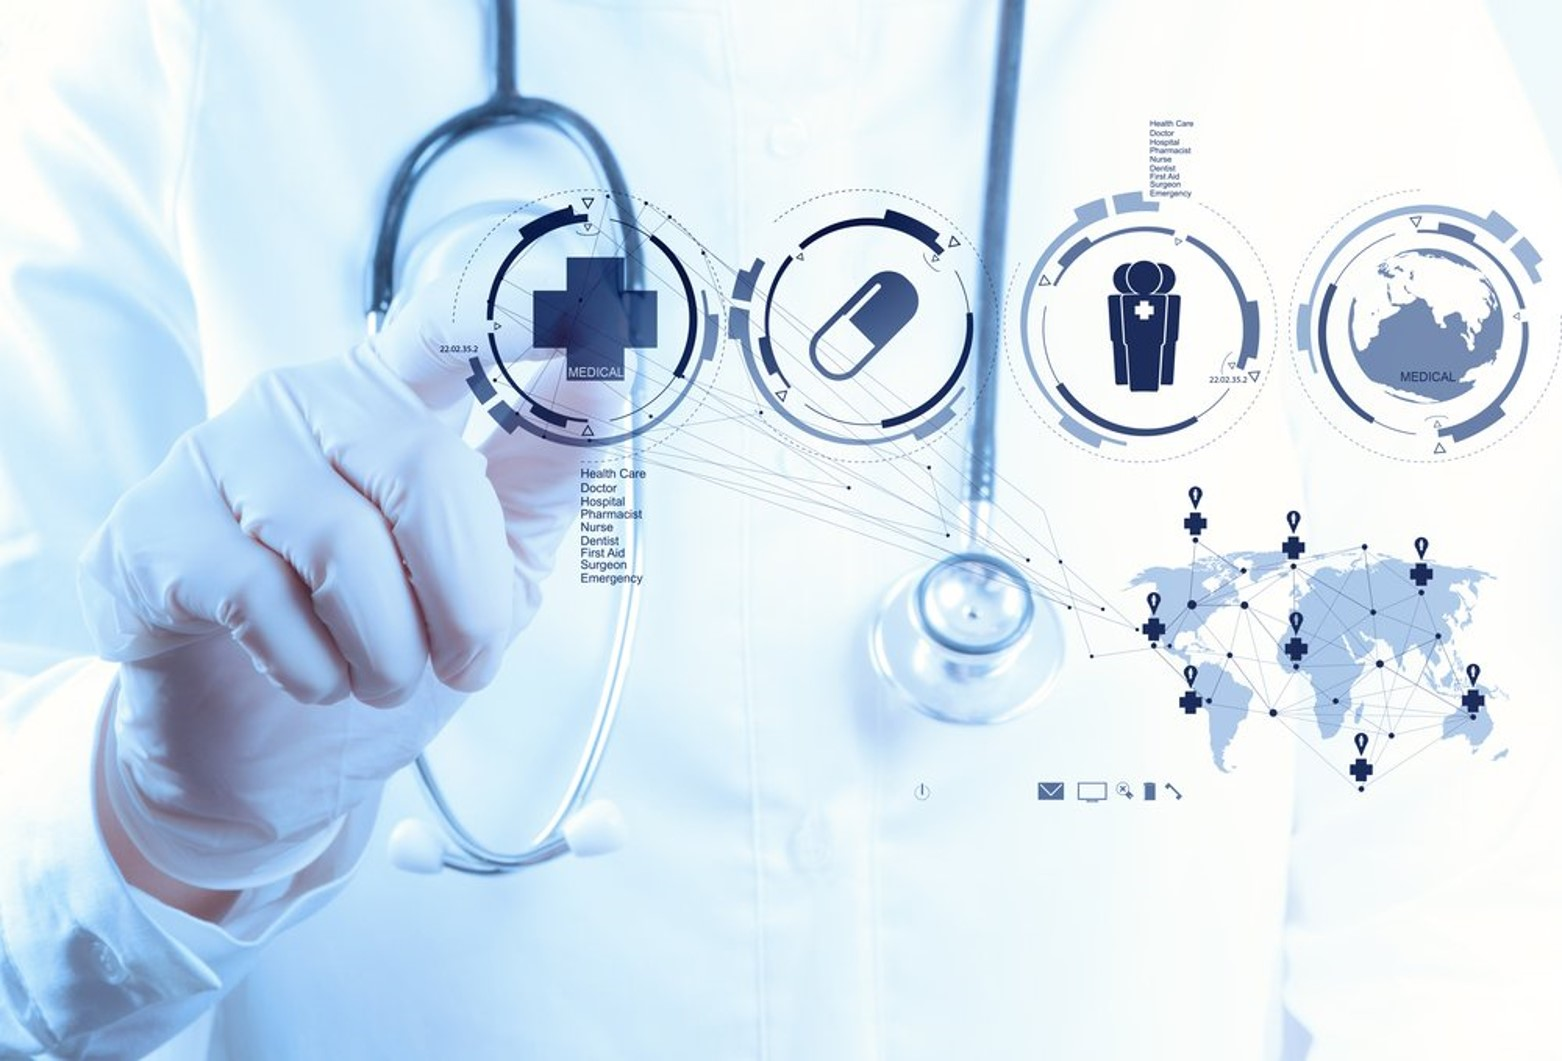 THE RPM GAME CHANGER: DEMONSTRATED CLINICAL IMPACT